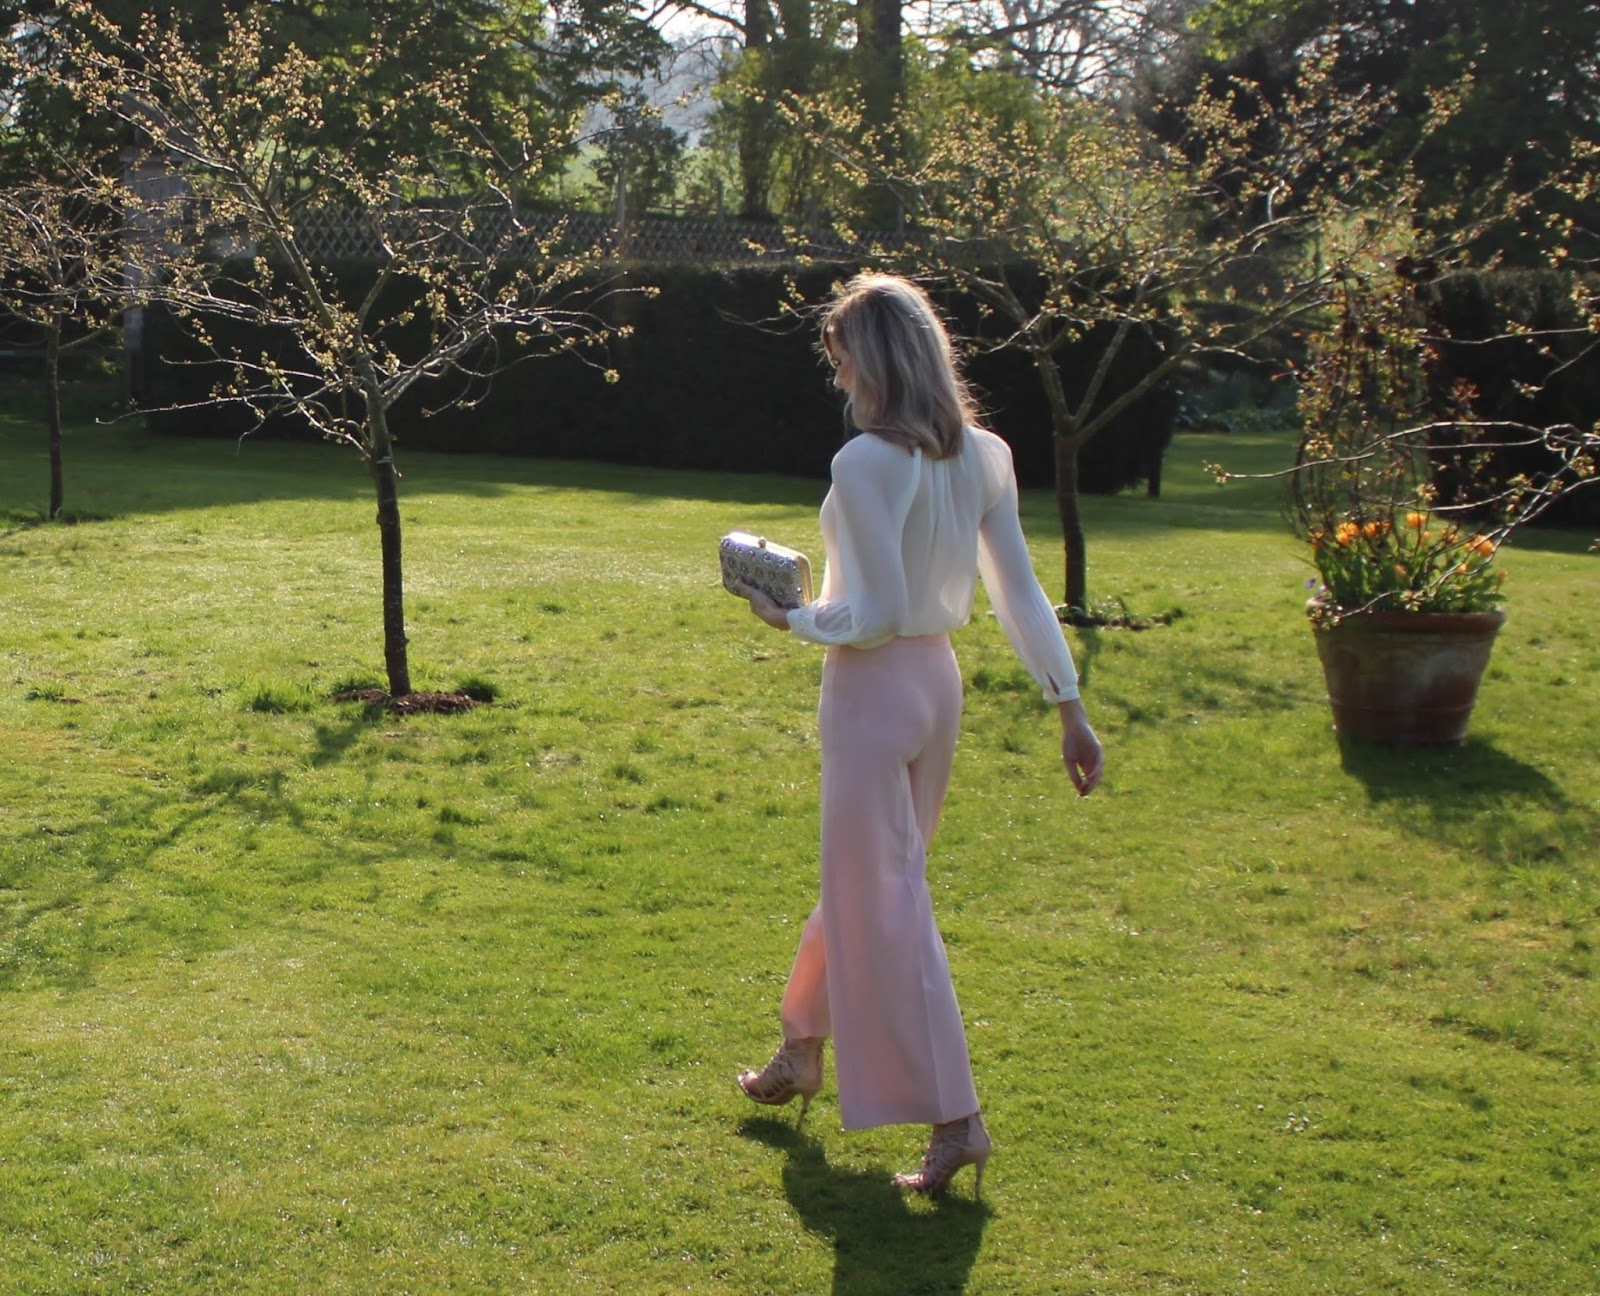 Blush Pink OOTD featuring Zara culottes - 5